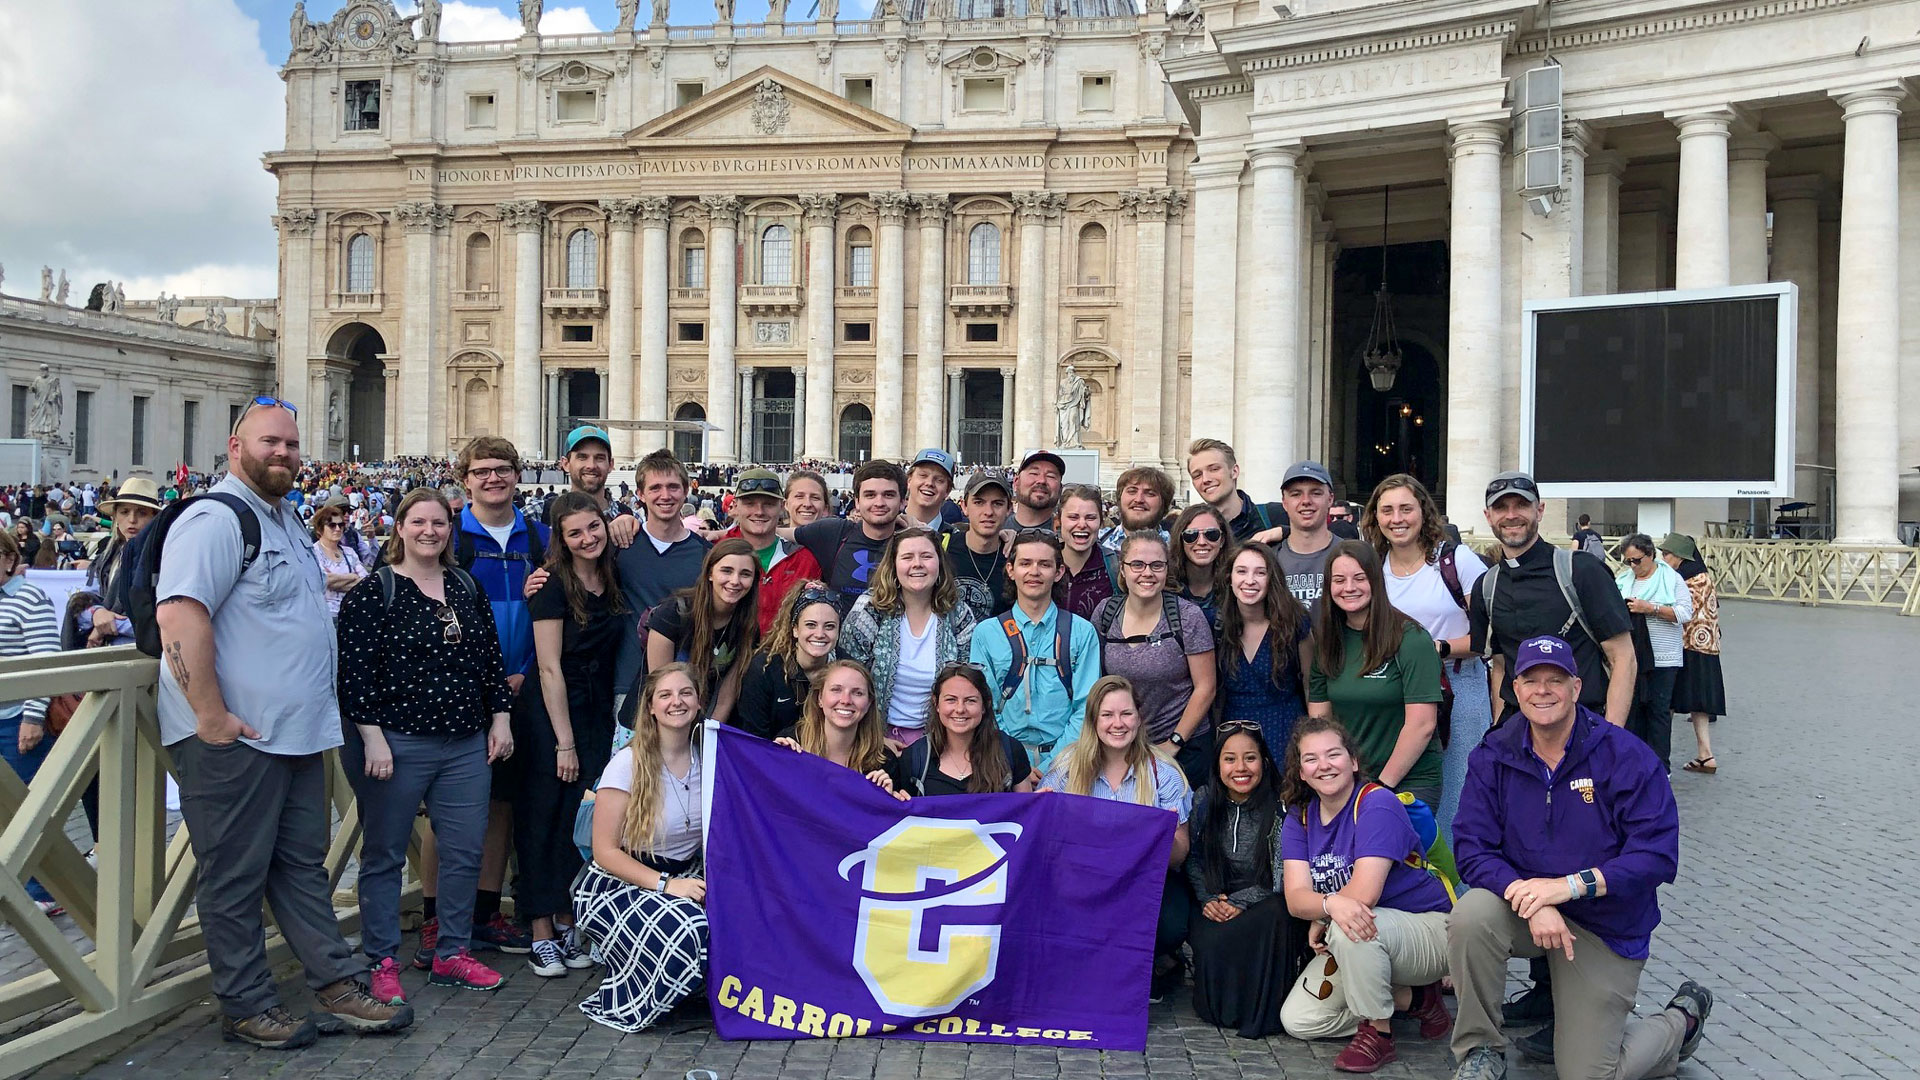 Carroll College group at the Vatican